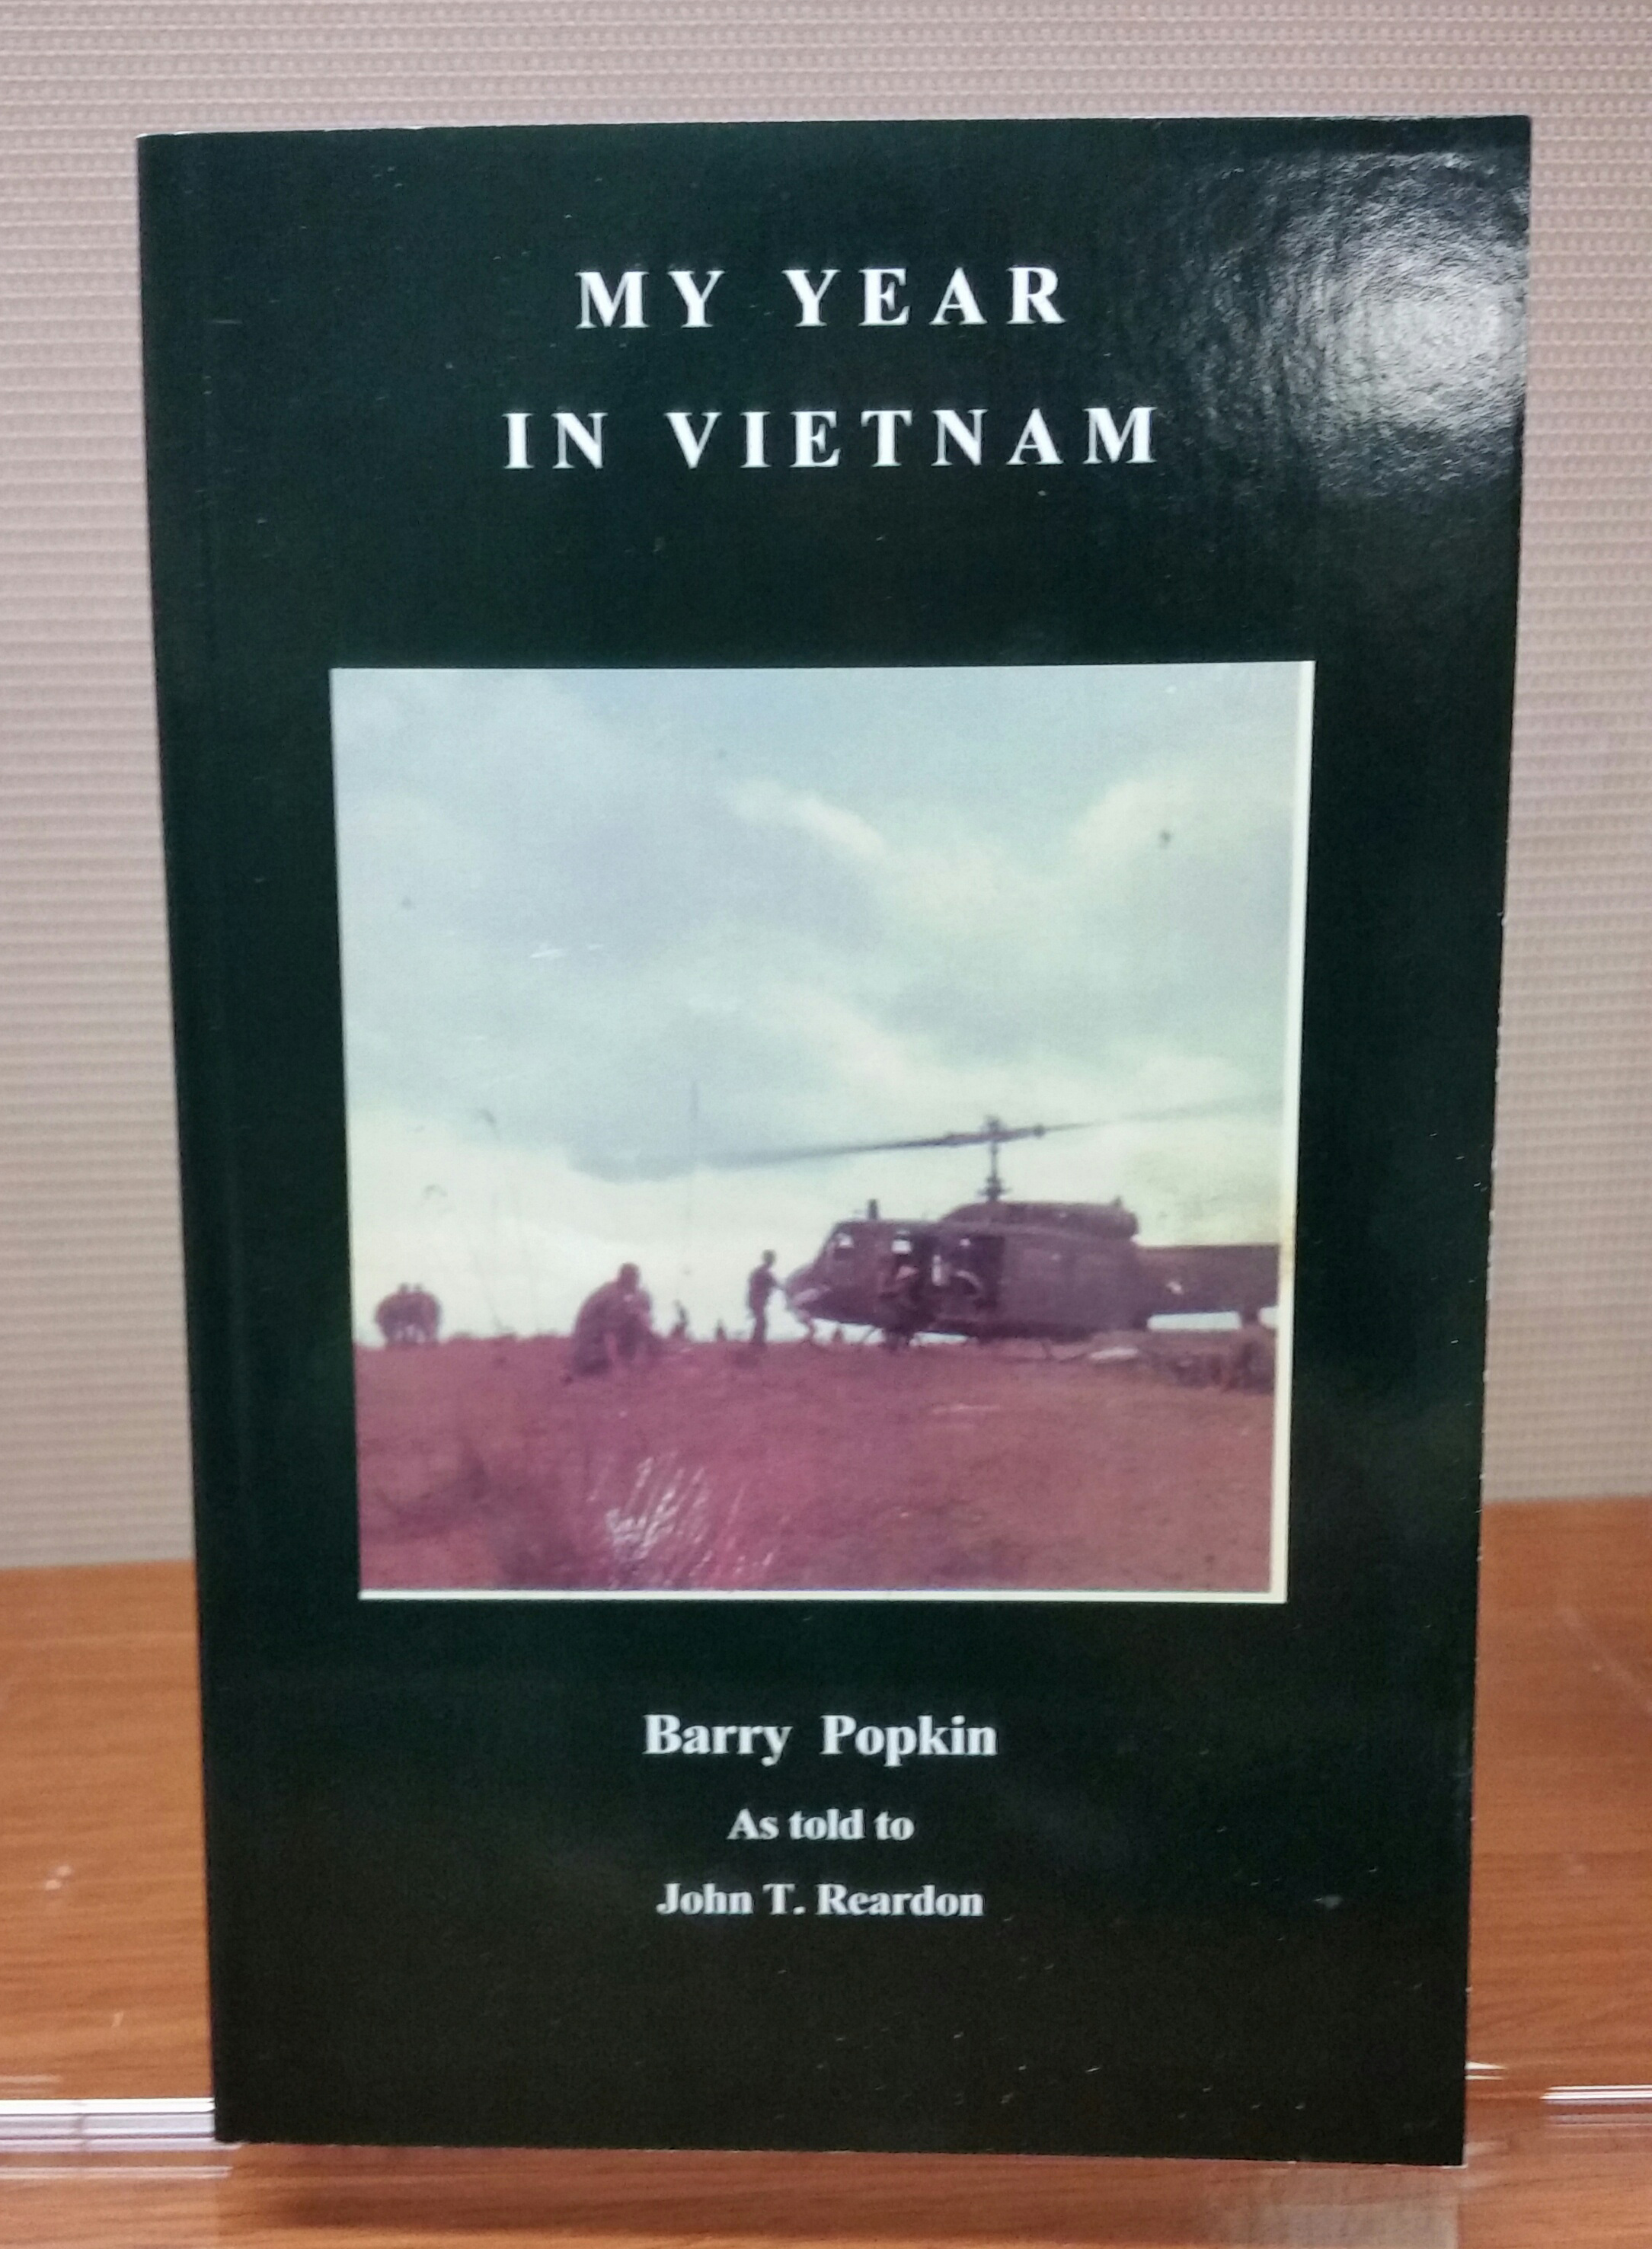 My Year in Vietnam, by Barry Popin as told to John T. Reardon, 2011, 150 pp. Prices reflect the cost of the book PLUS S&H fee of $3.00.